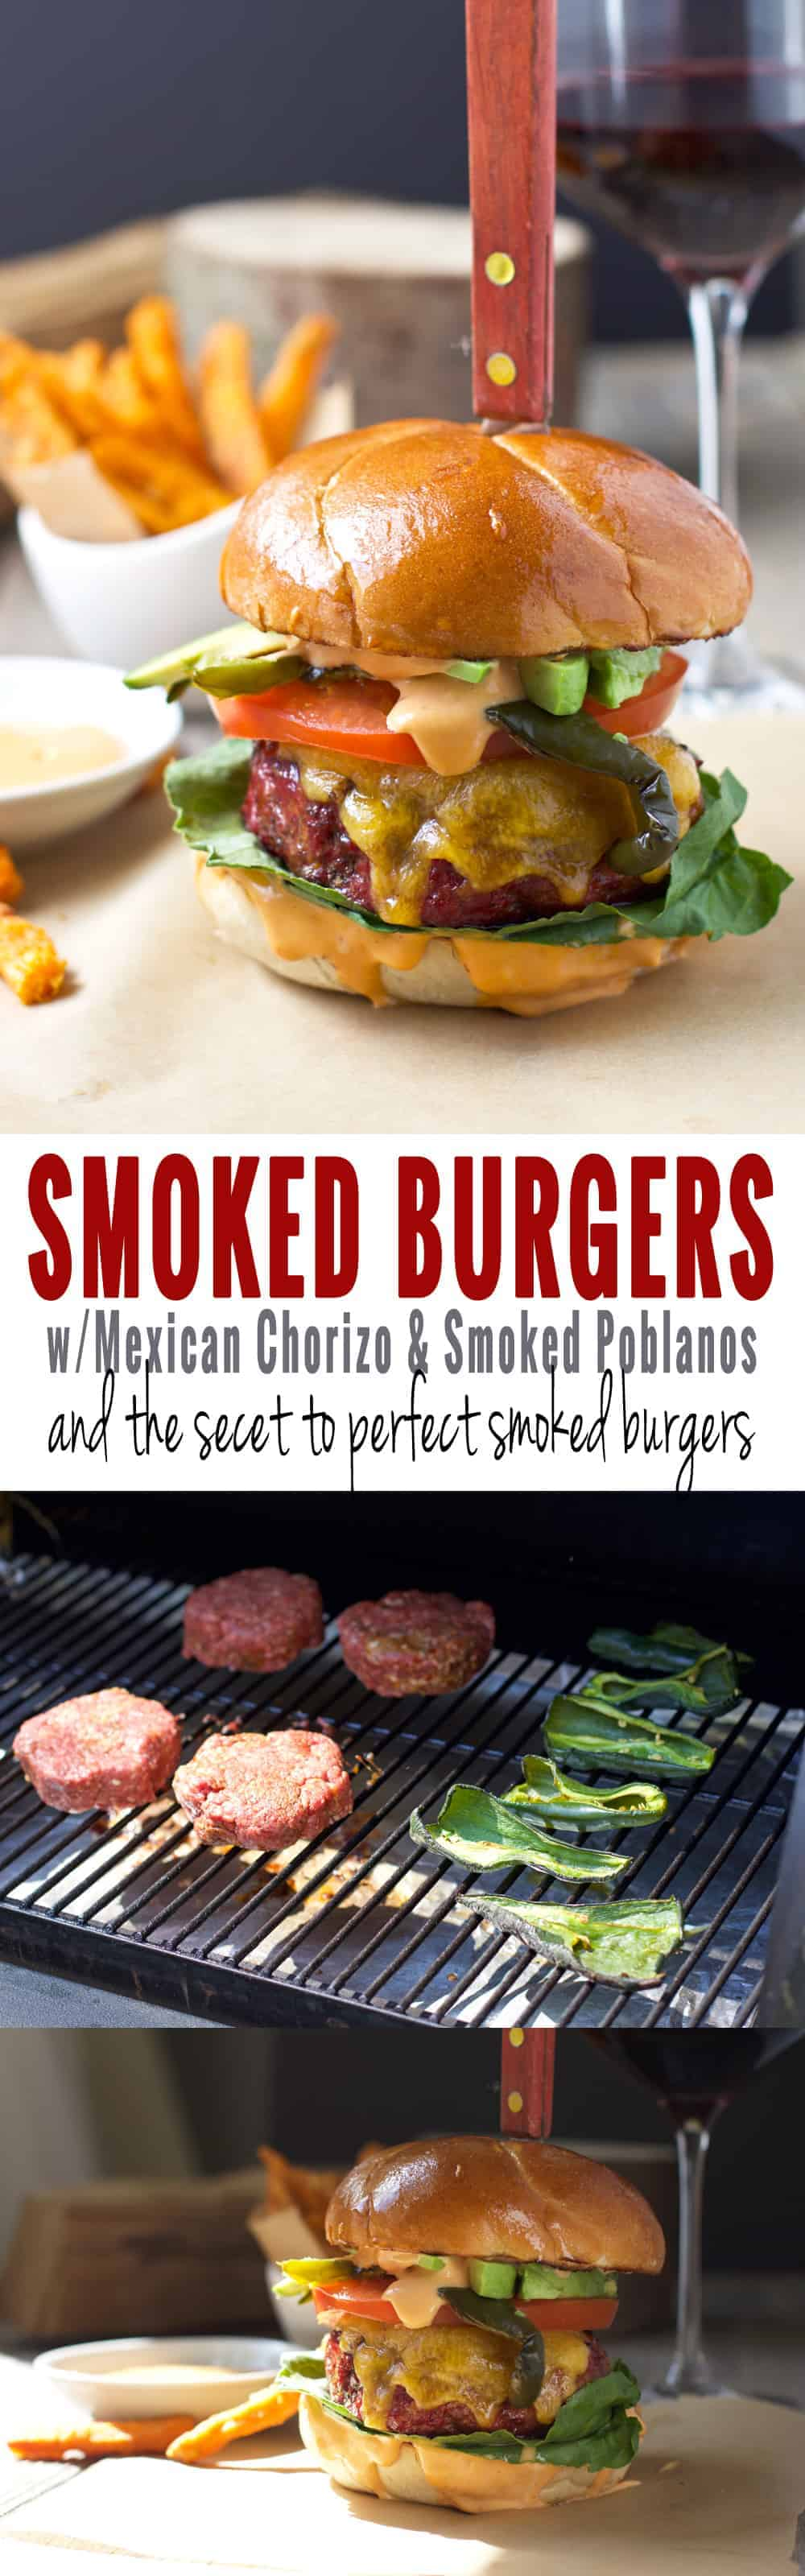 Smoked Burgers with Mexican Chorizo and Smoked Poblano Peppers and the secret to perfect smoked burgers